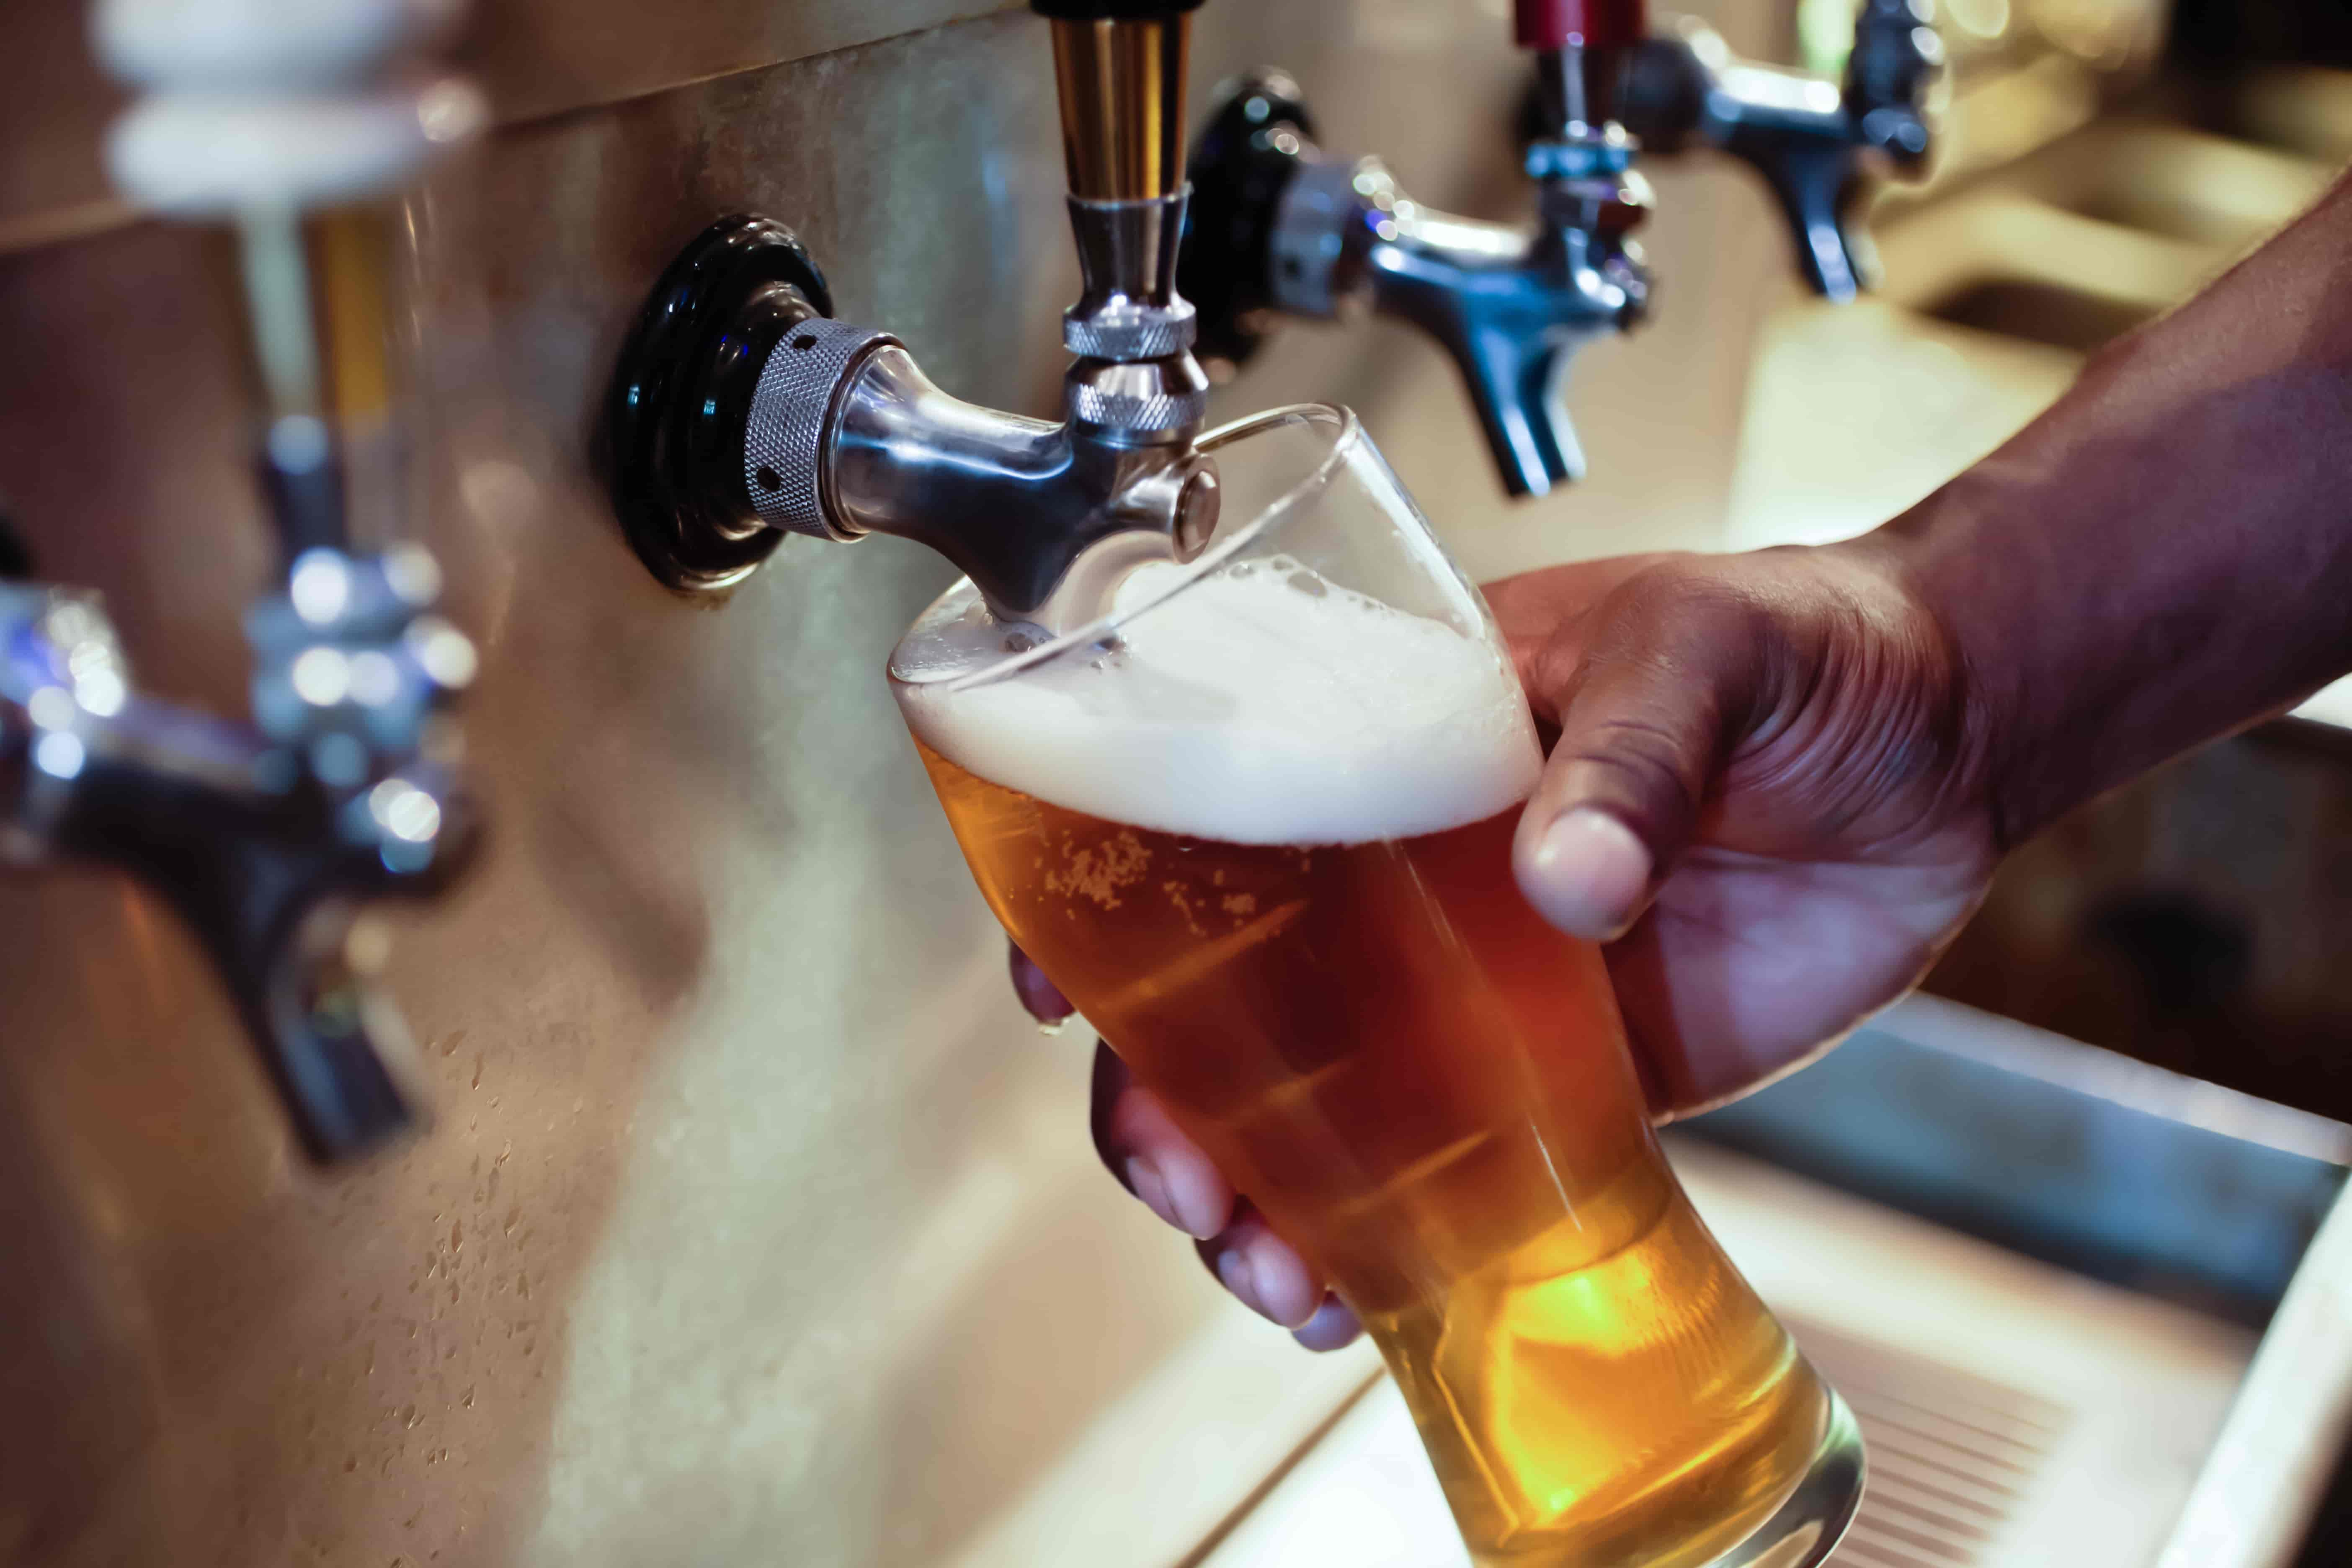 Beer Tap System Guide 2021 - Options & Costs